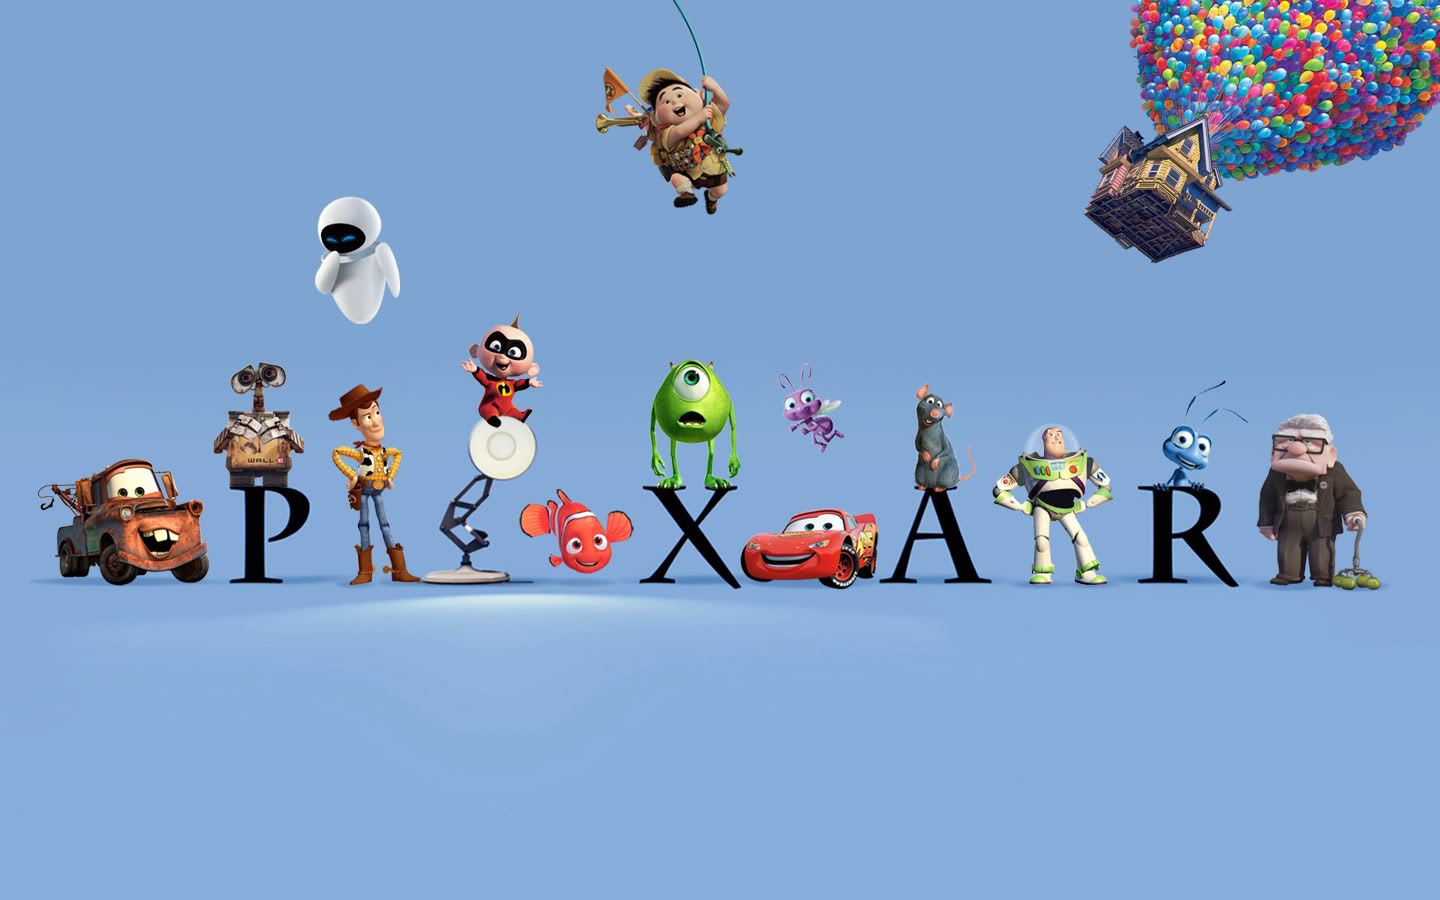 Pixar is one of the premier animation companies in the world